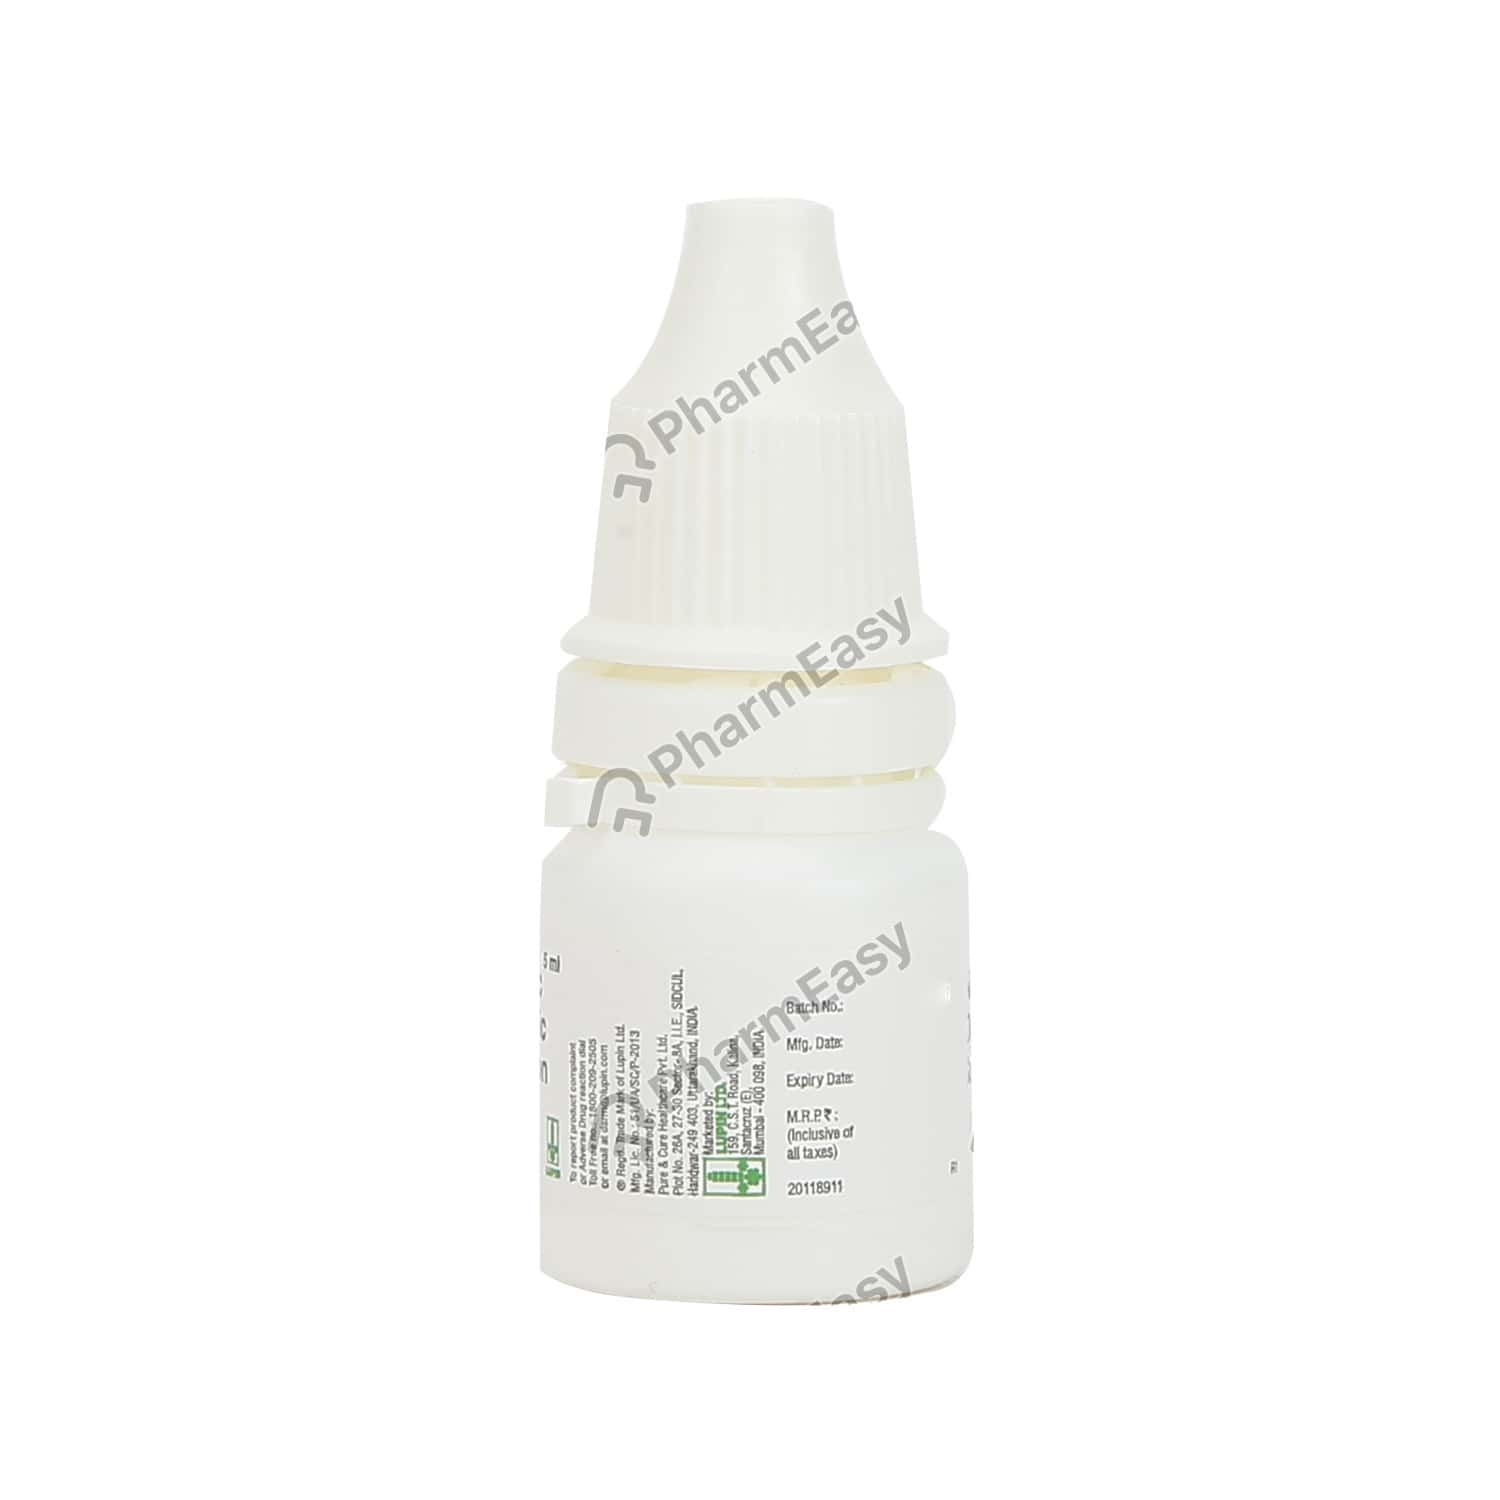 Nepablu 0.1% Eye Drops 5ml